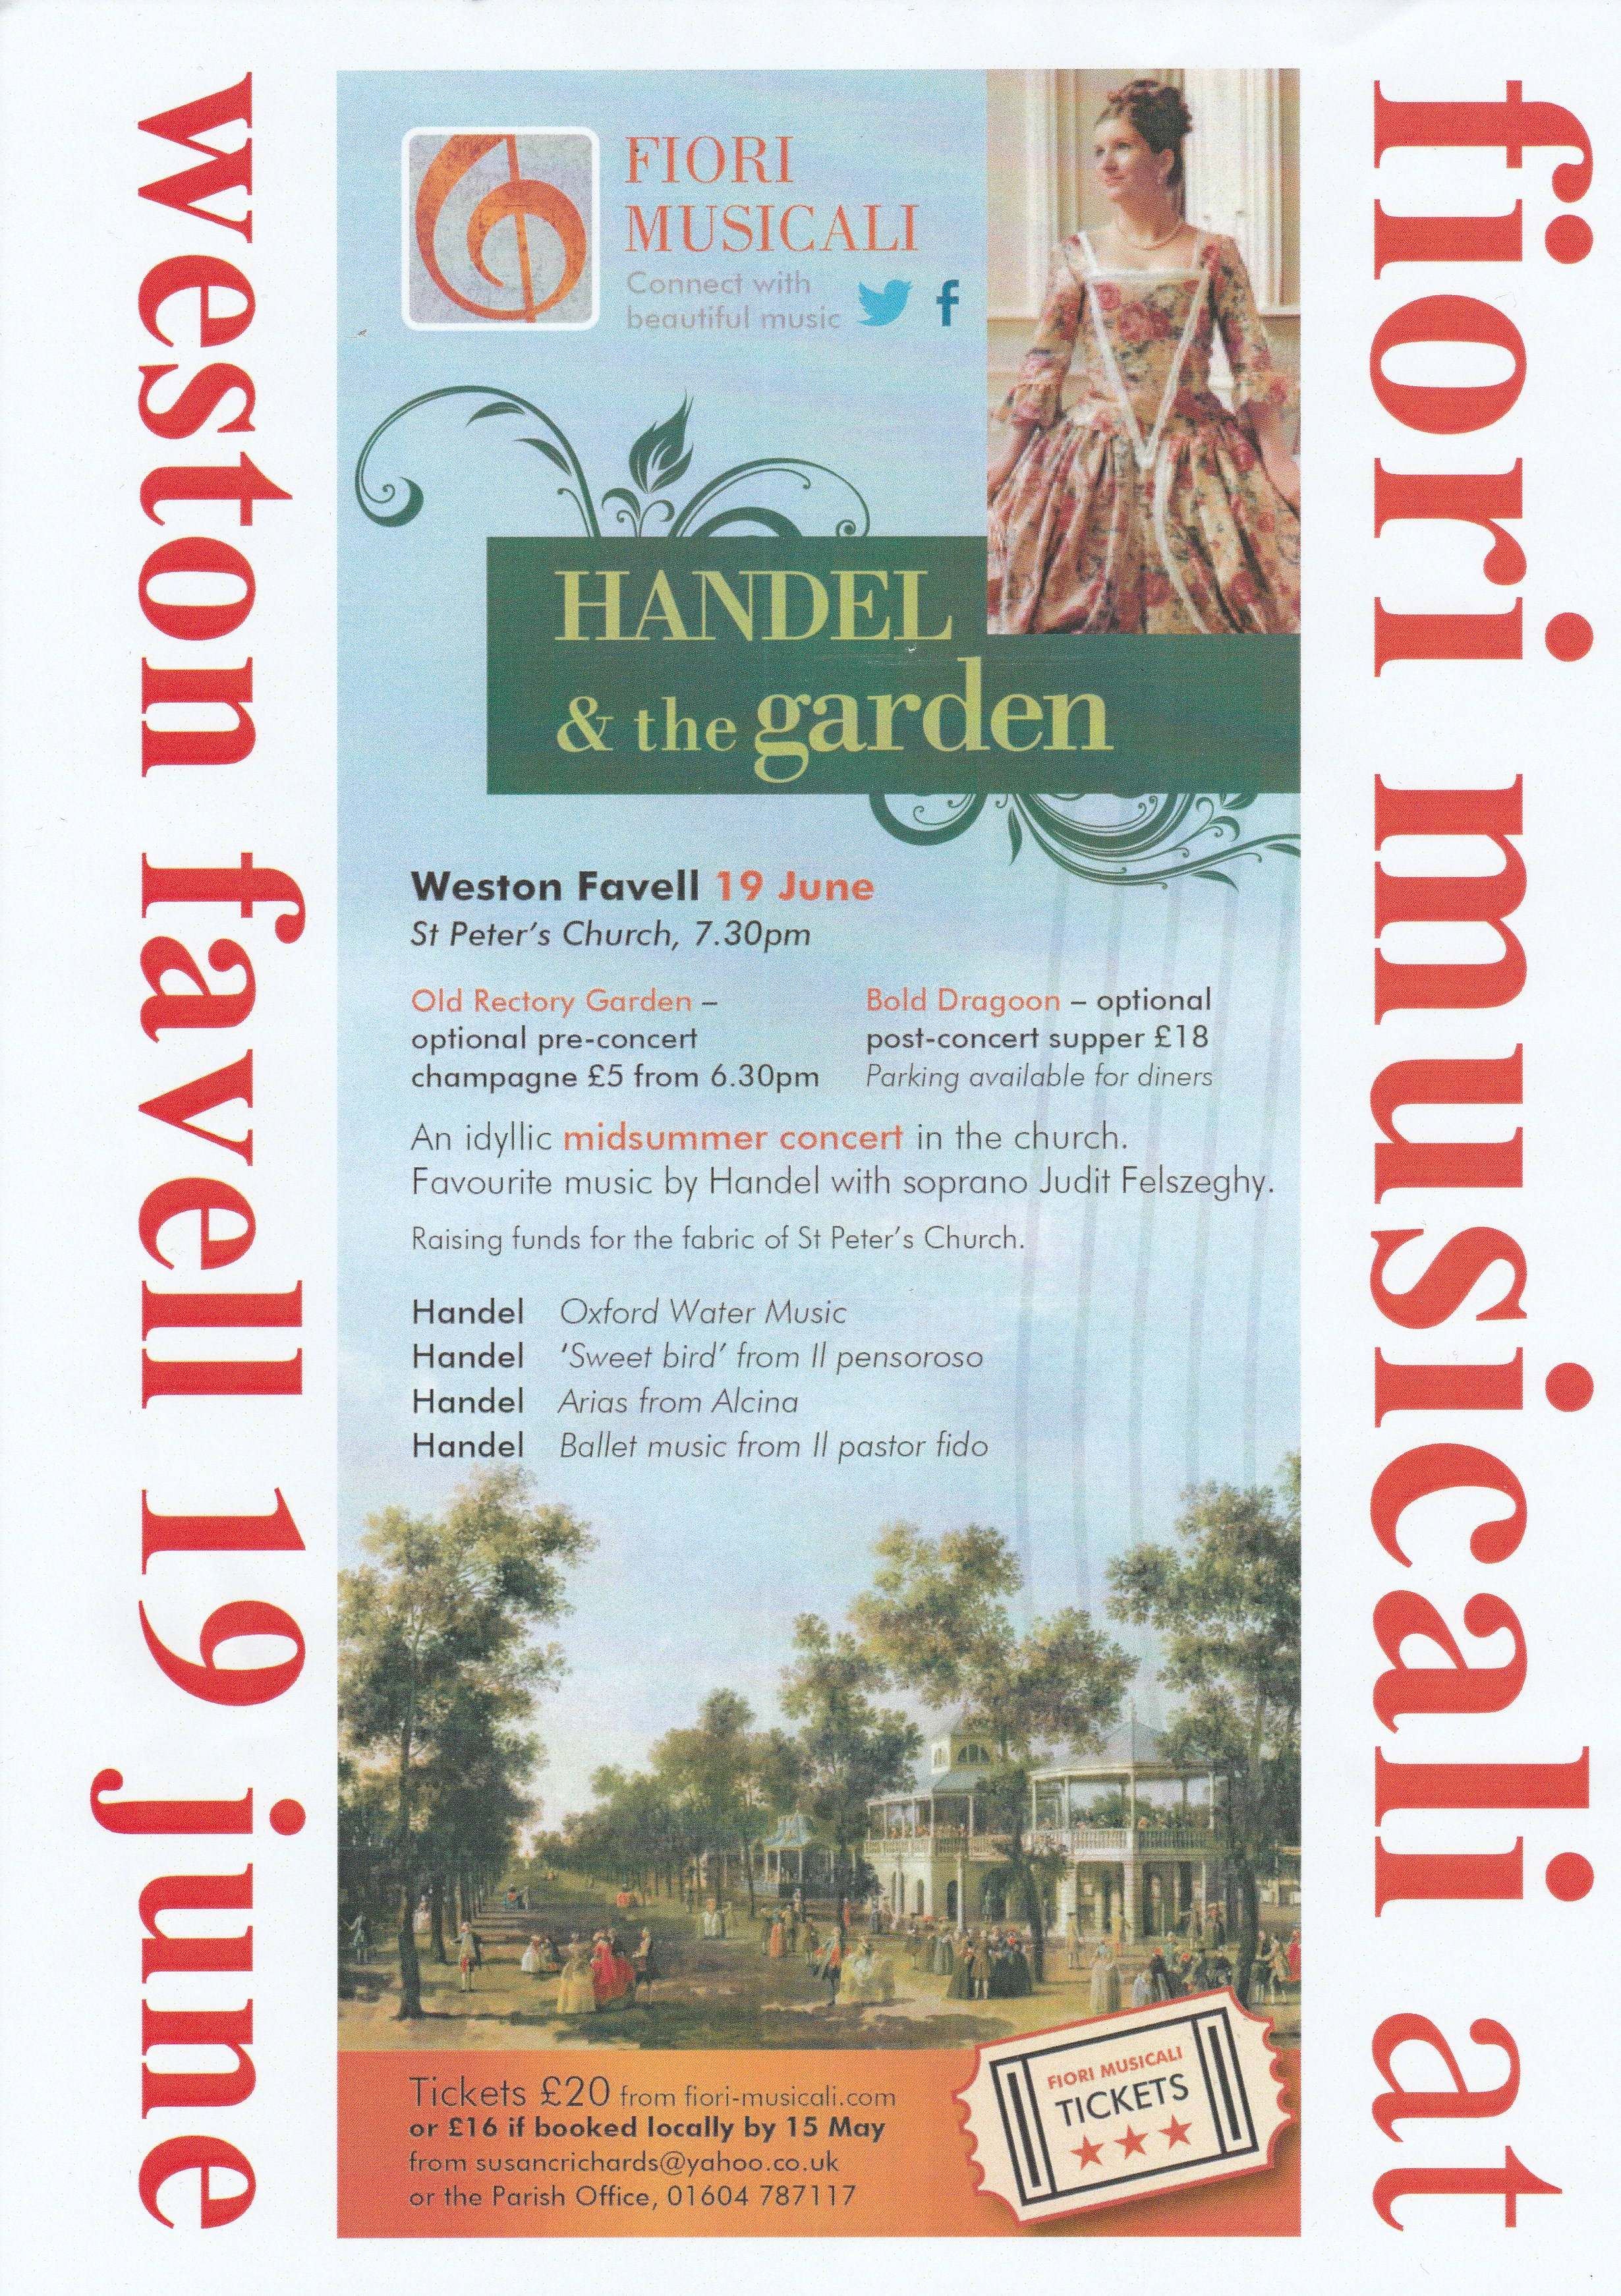 Handel and the Garen By Fiori Musicali  Hosted at St. Peter's Church Weston Favell  Event Starts at 7.30pm  Pre-Concert Champagne at  Old Rectort Garden  costing £5.  Optional Post-Concert Supper at  Bold Dragon  costing £18  Concert Tickets £20 from www.fiori-musicali.com or £16 if booked locally by 15th May from susanrichards@yahoo.com or the Parish Office on 01604 787117.